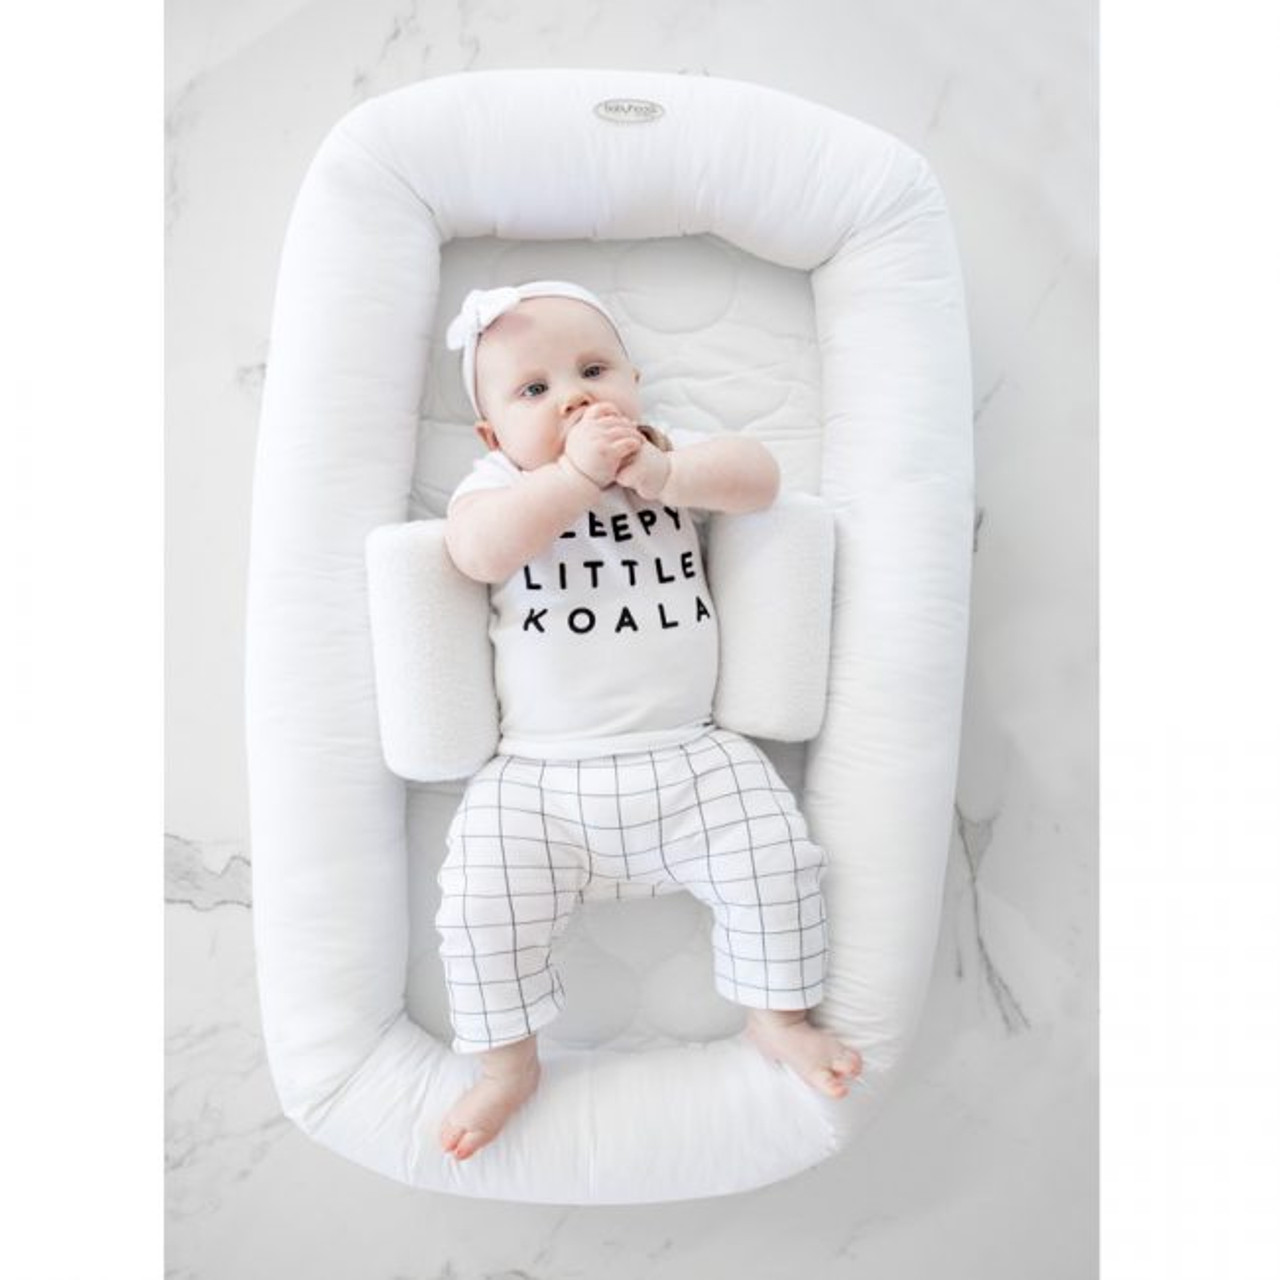 Sample Pure White (Listing is without the baby sleep positioner)